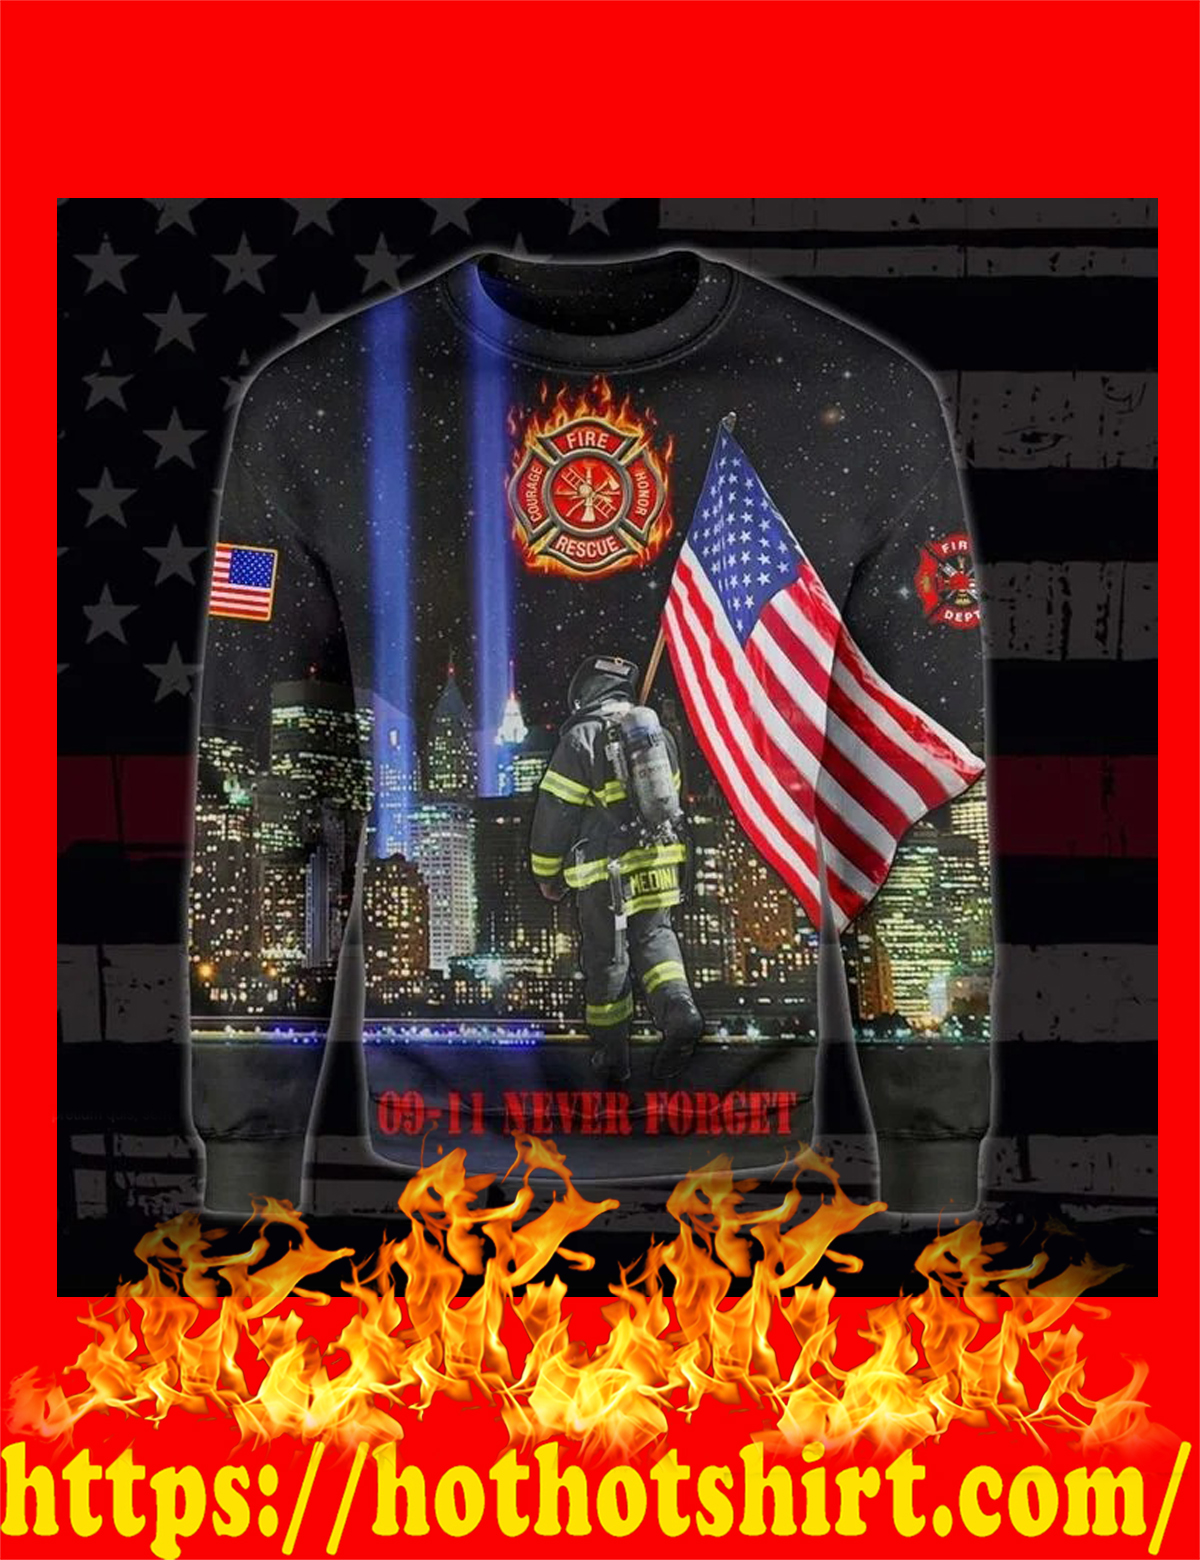 US firefighters 09 11 never forget all over printed long sleeves